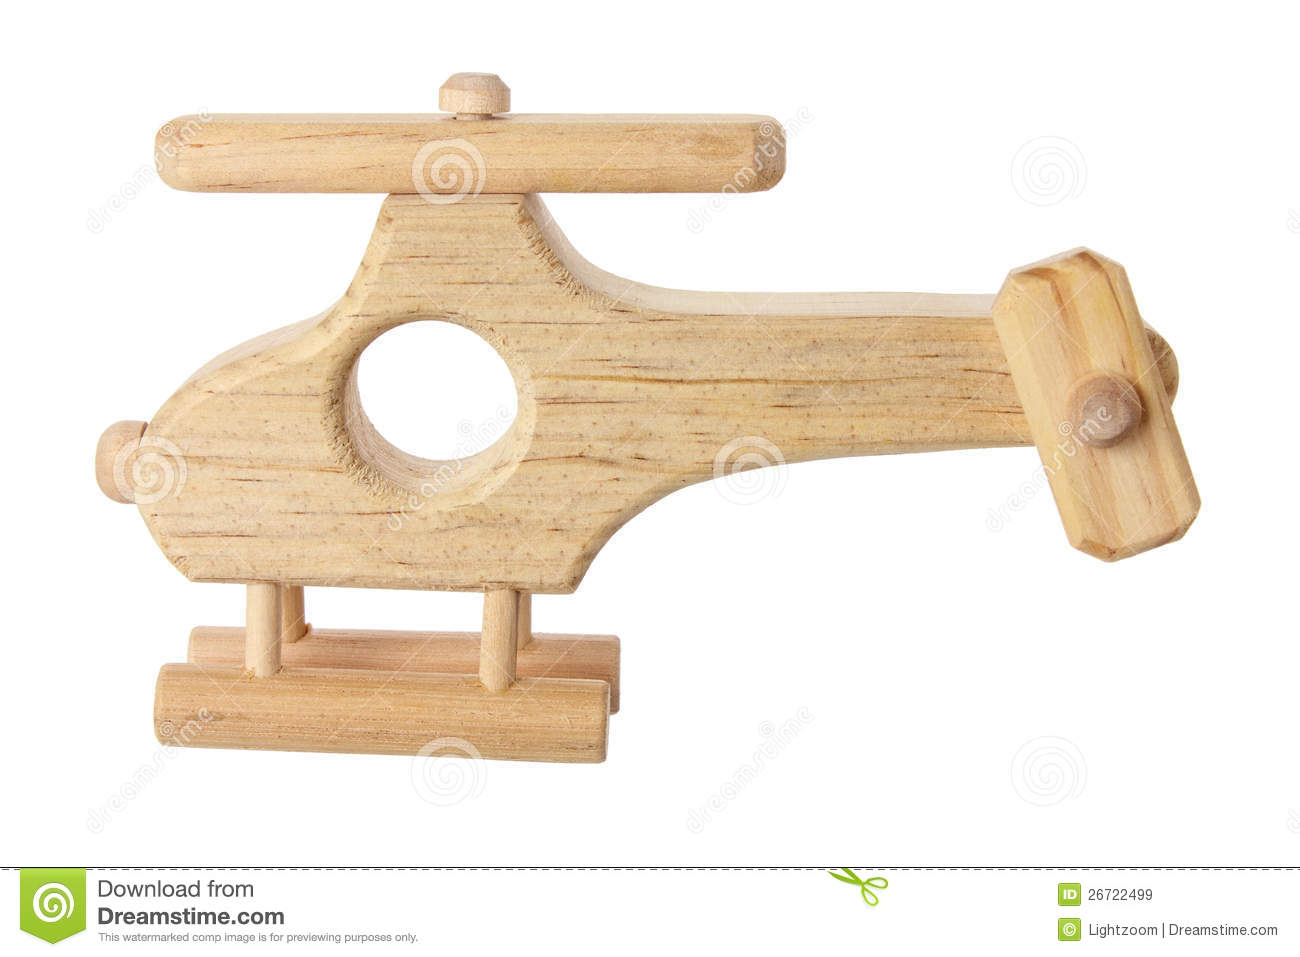 Wooden Toy Helicopter on White Background.